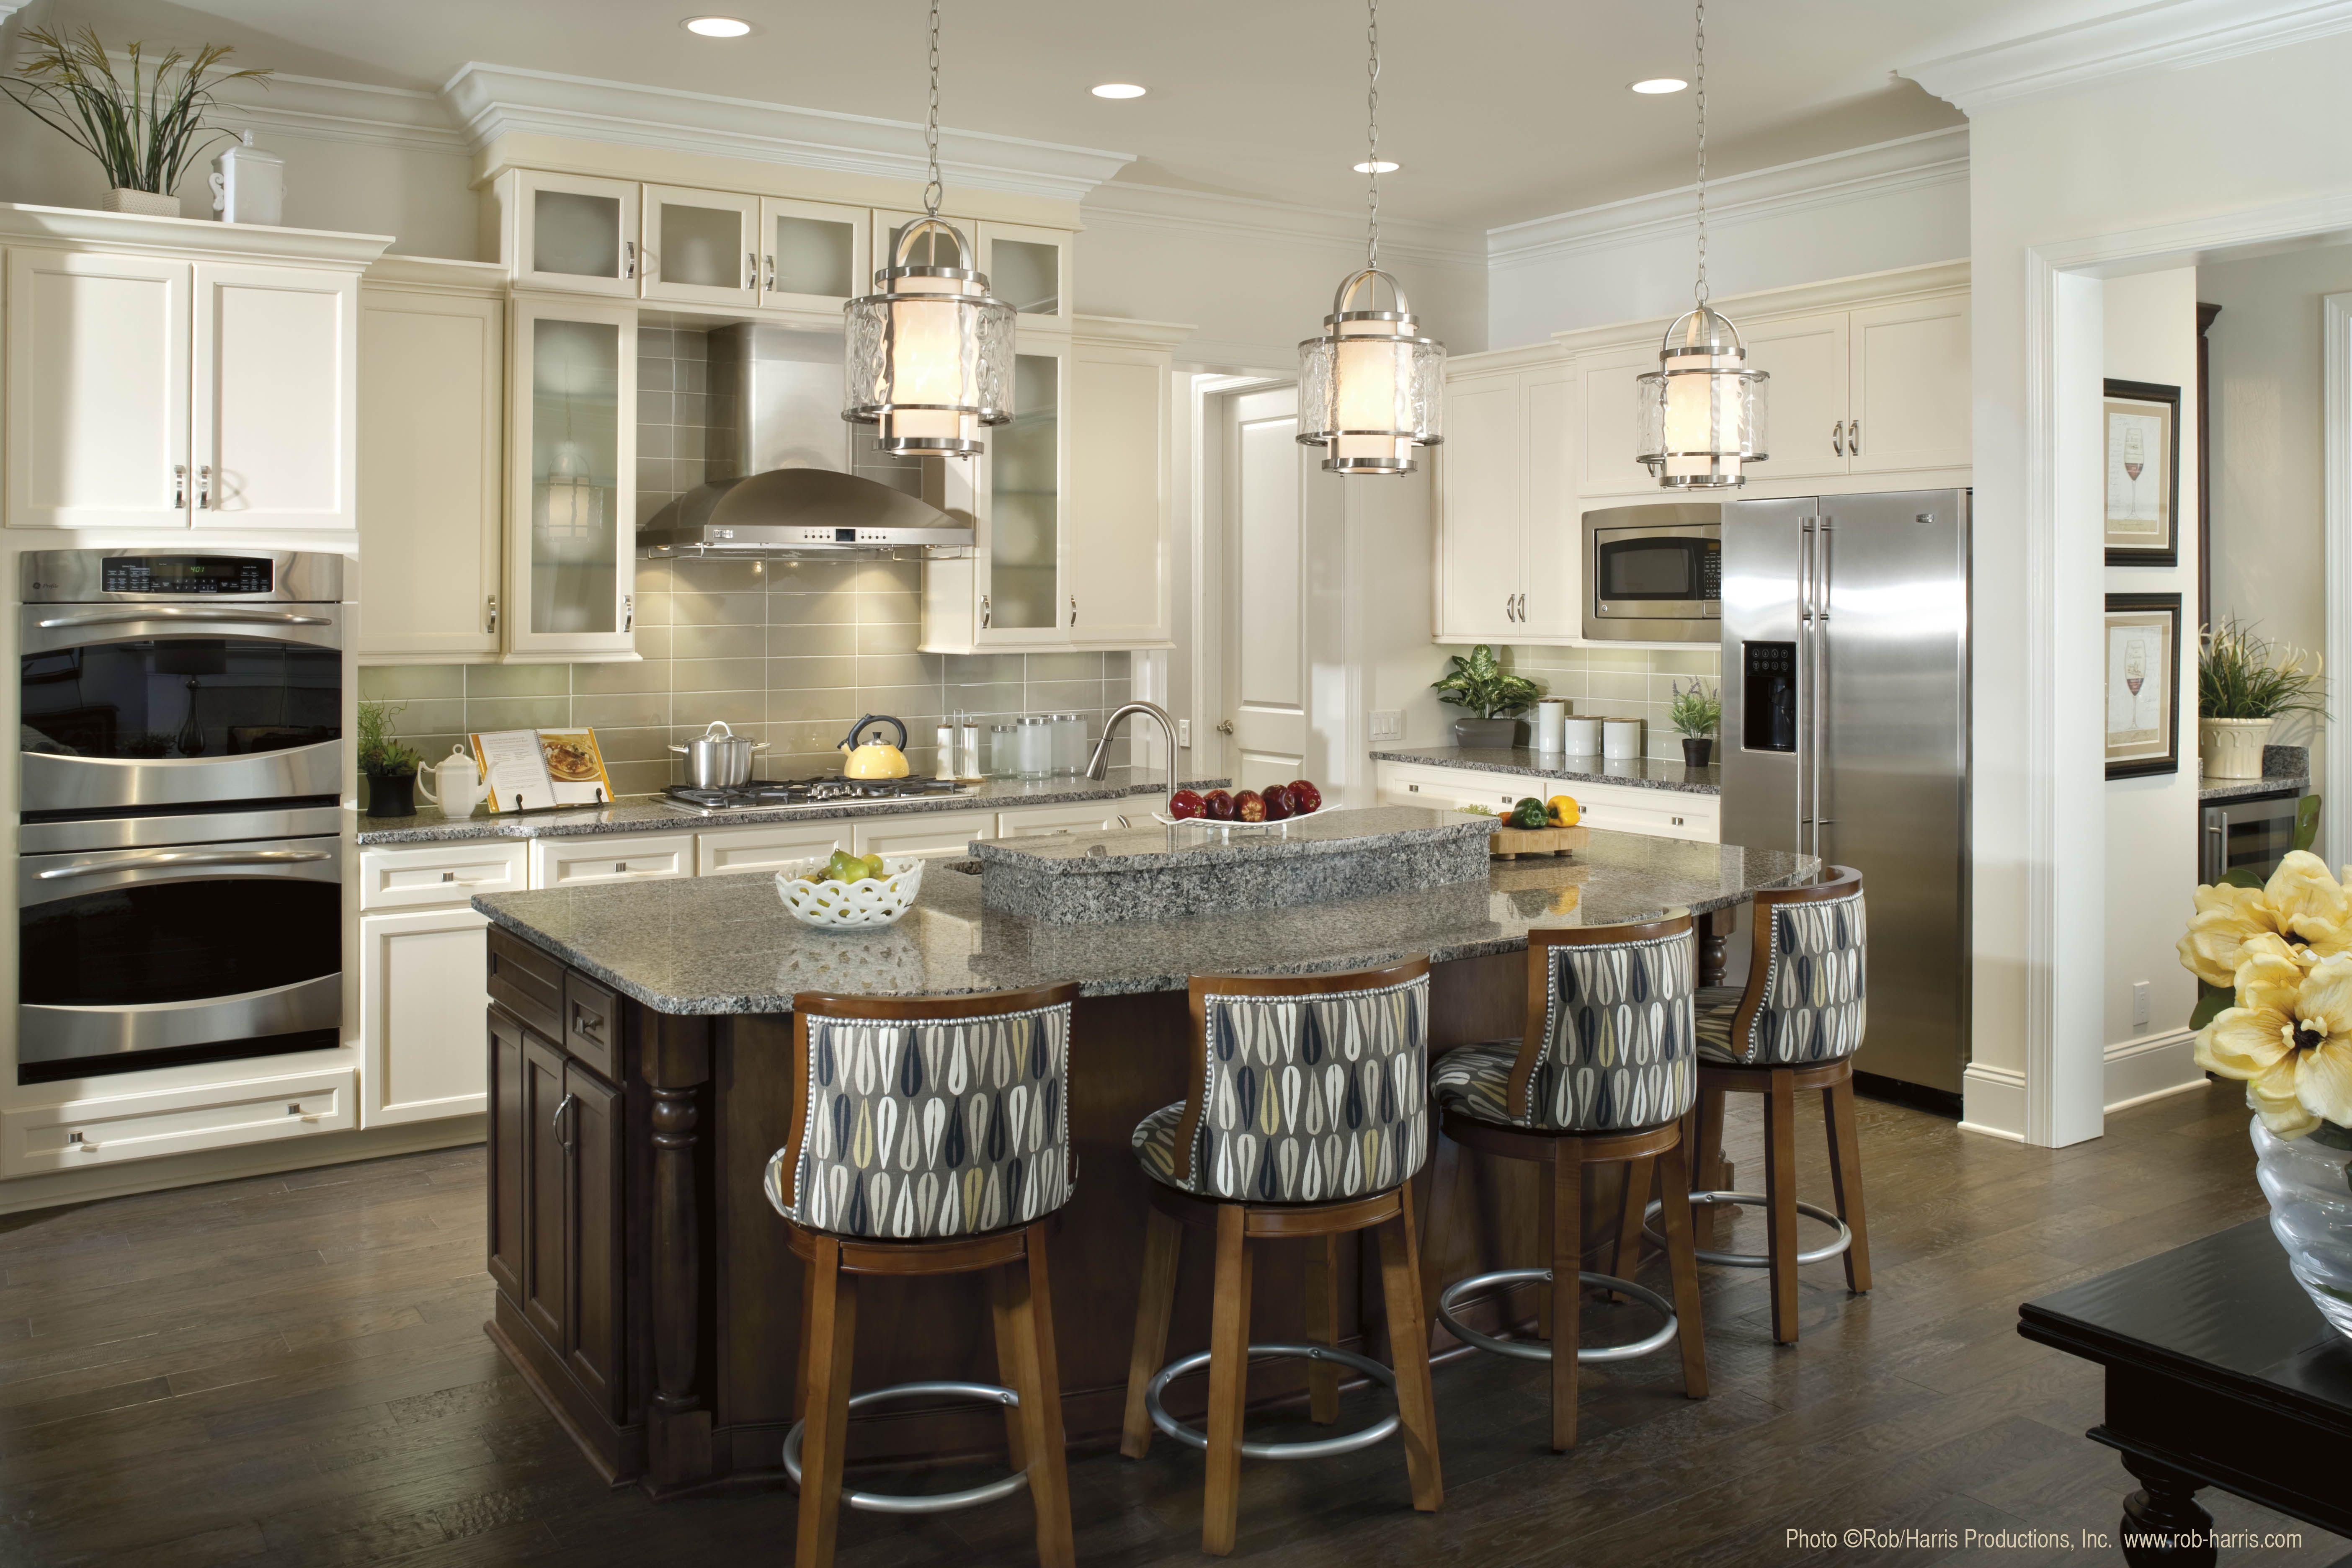 Light Fixtures For Kitchen Island Pendant Lighting Over Kitchen Island The Perfect